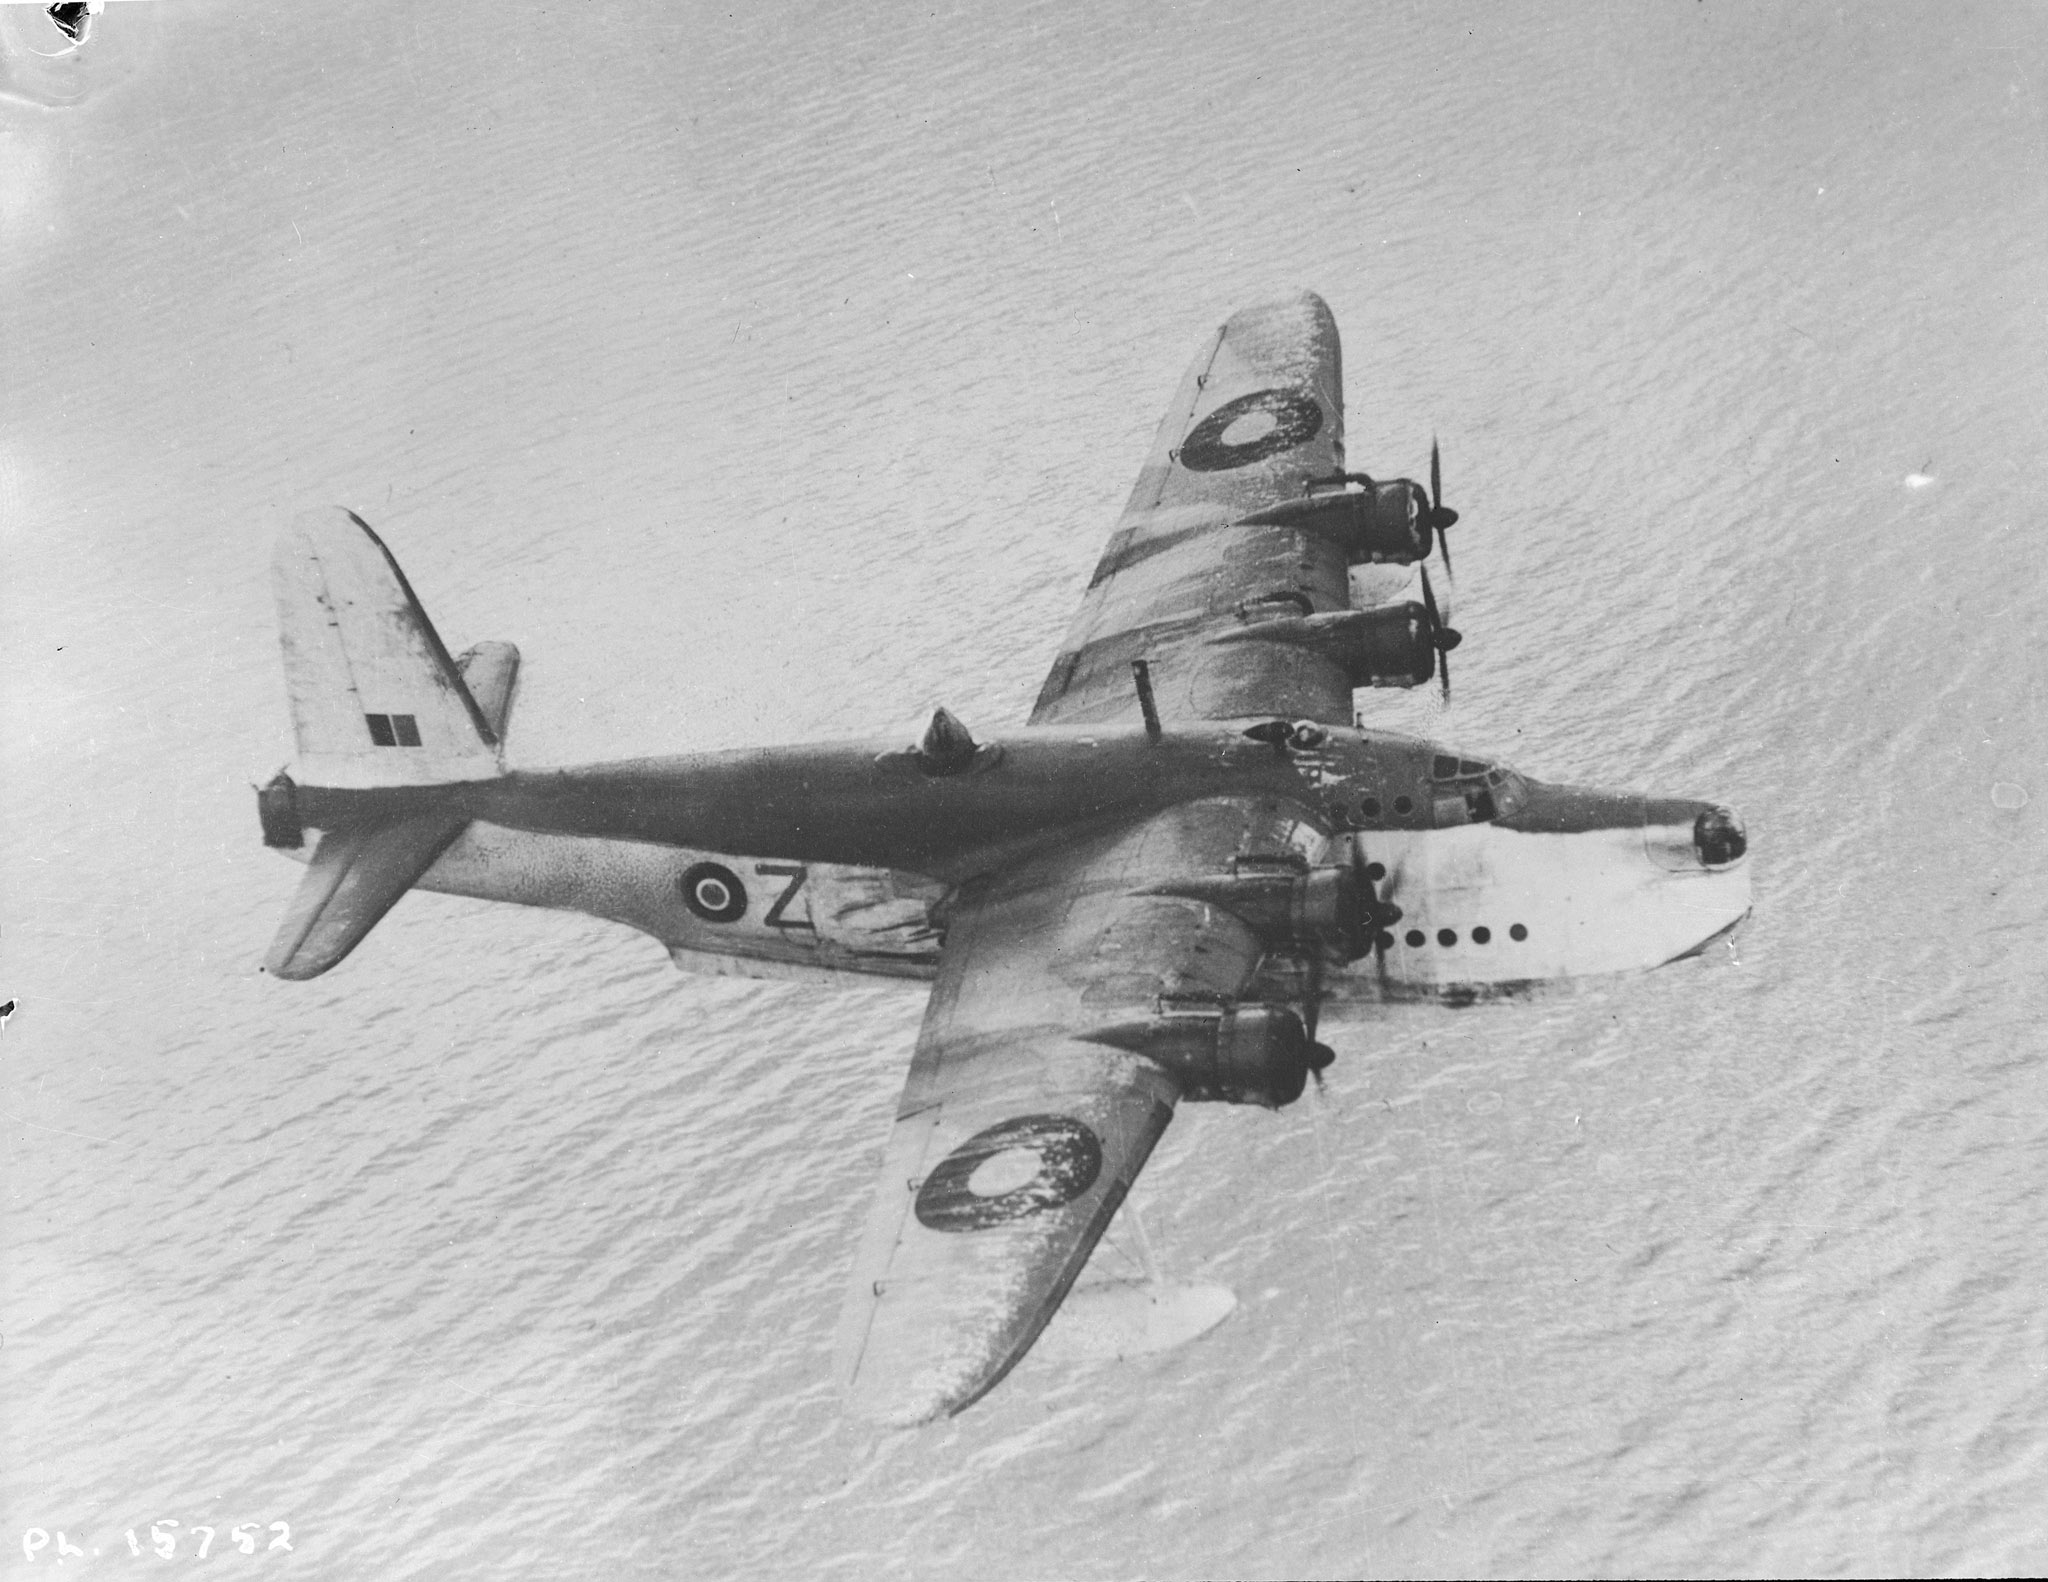 The Shorts Sunderland was one of Coastal Command's strongest striking forces in the war against U- Boats and was widely famed for its long-range patrol work. This photo of an RCAF 442 Squadron Short Sunderland was taken on April 15, 1943. Although no Sunderlands were officially on strength with the RCAF, 442 and 423 Squadrons of the RCAF were equipped with the aircraft. PHOTO: DND Archives, PL-15752